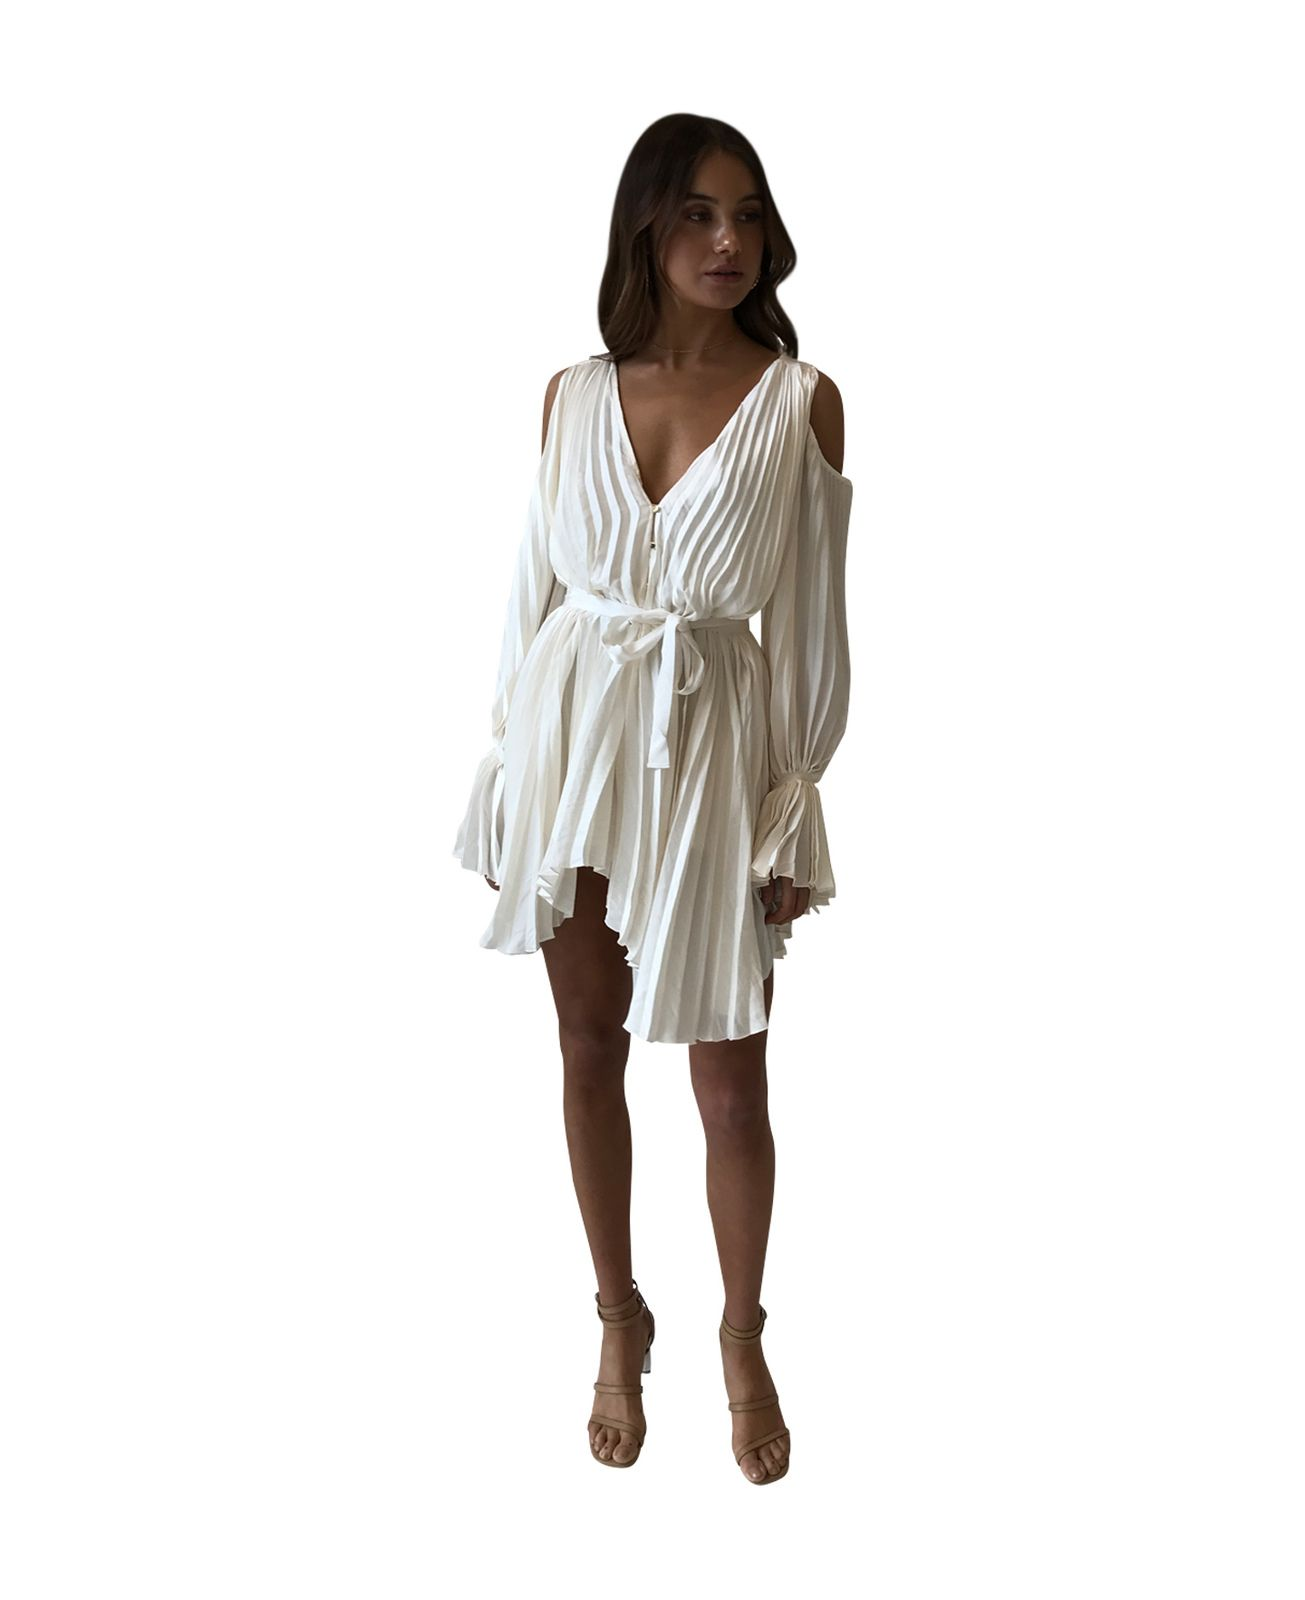 94a1eff86bc Alice McCall Sunkissed Playsuit in Creme - Alice McCall